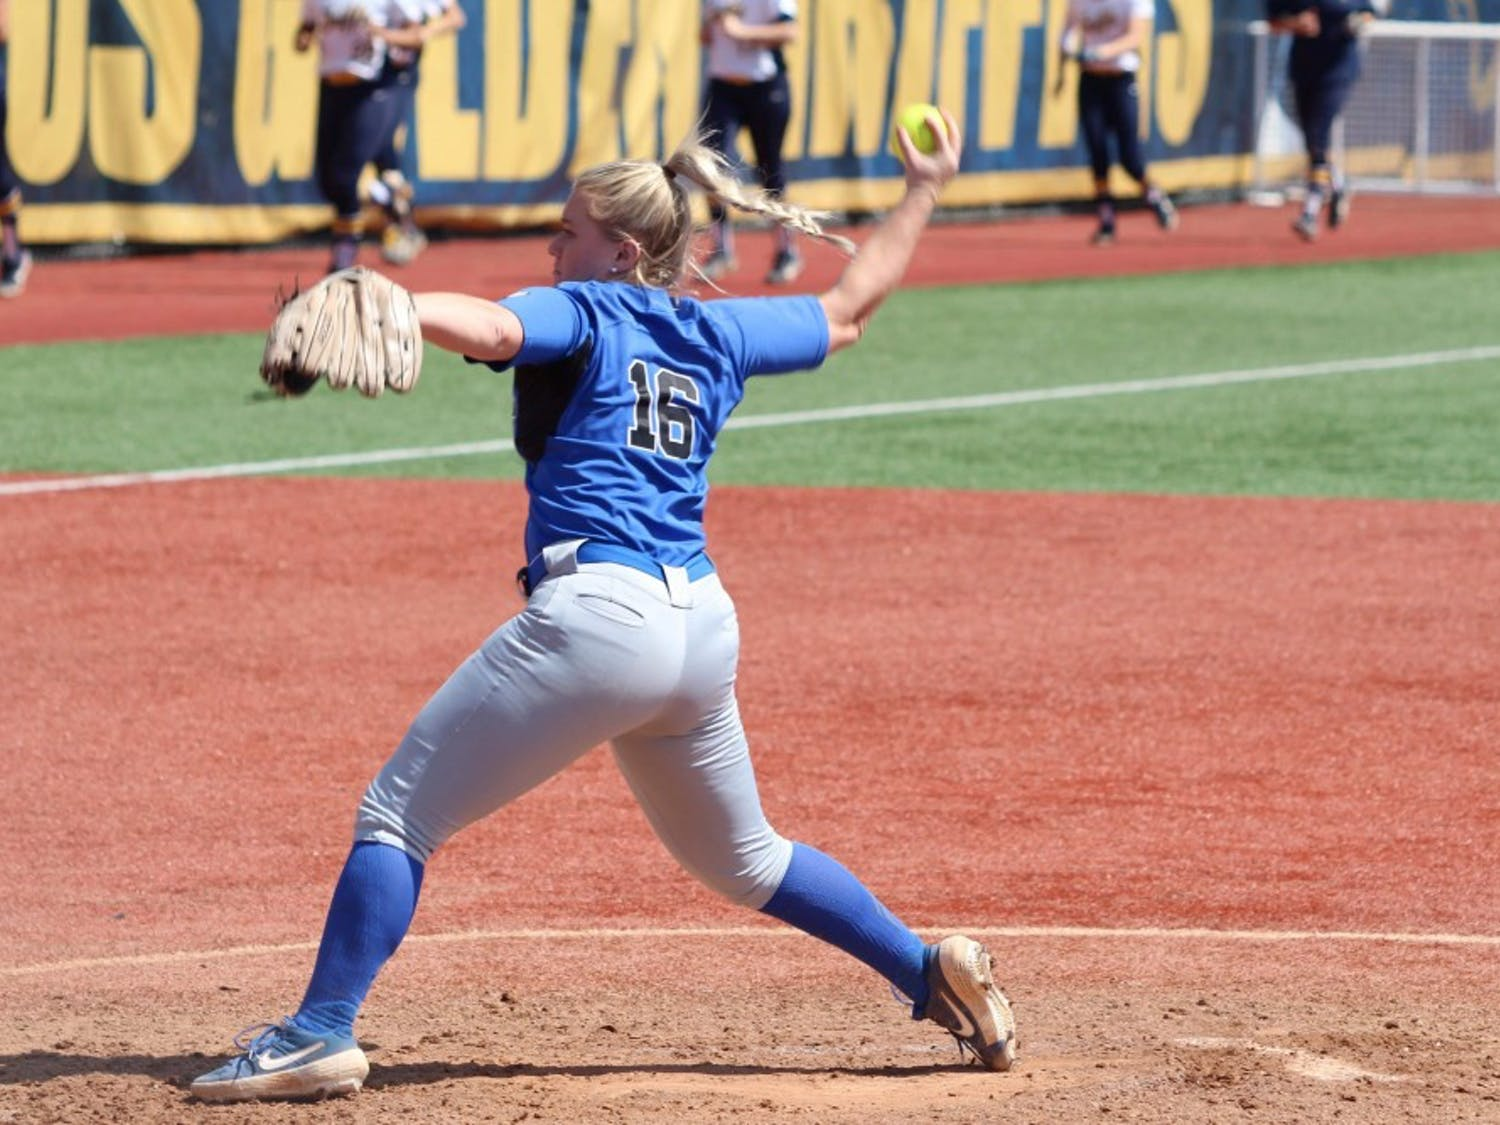 Senior pitcher Ally Power winds up to throw. Power went five innings, surrendering two runs and striking out four as the Bulls lost game one of their doubleheader.